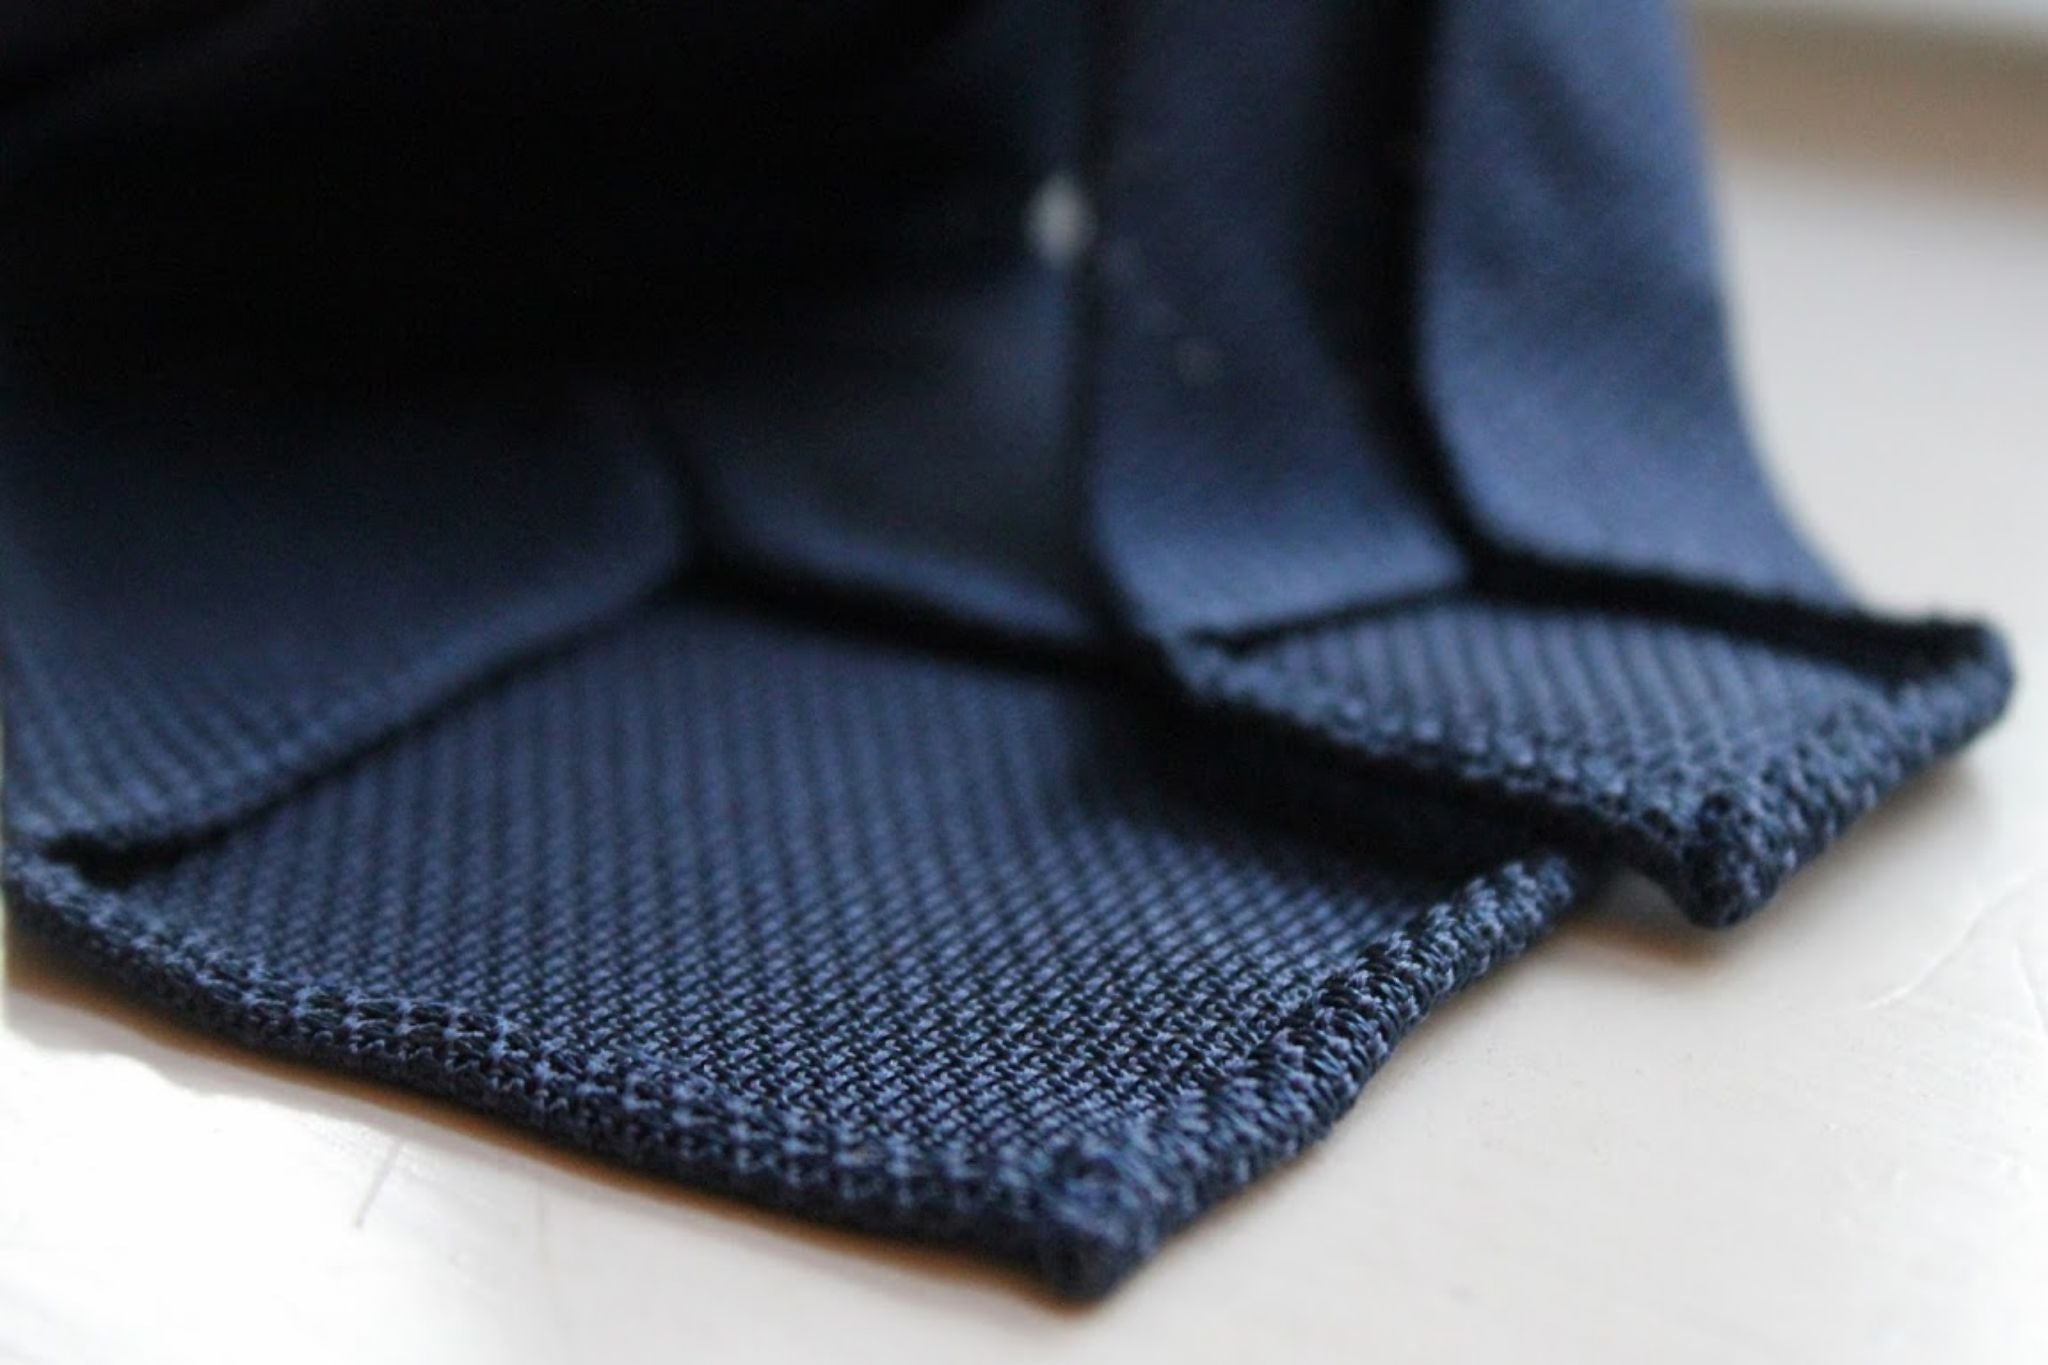 Navy grenadine bespoke tie details - untipped and hand-rolled edges